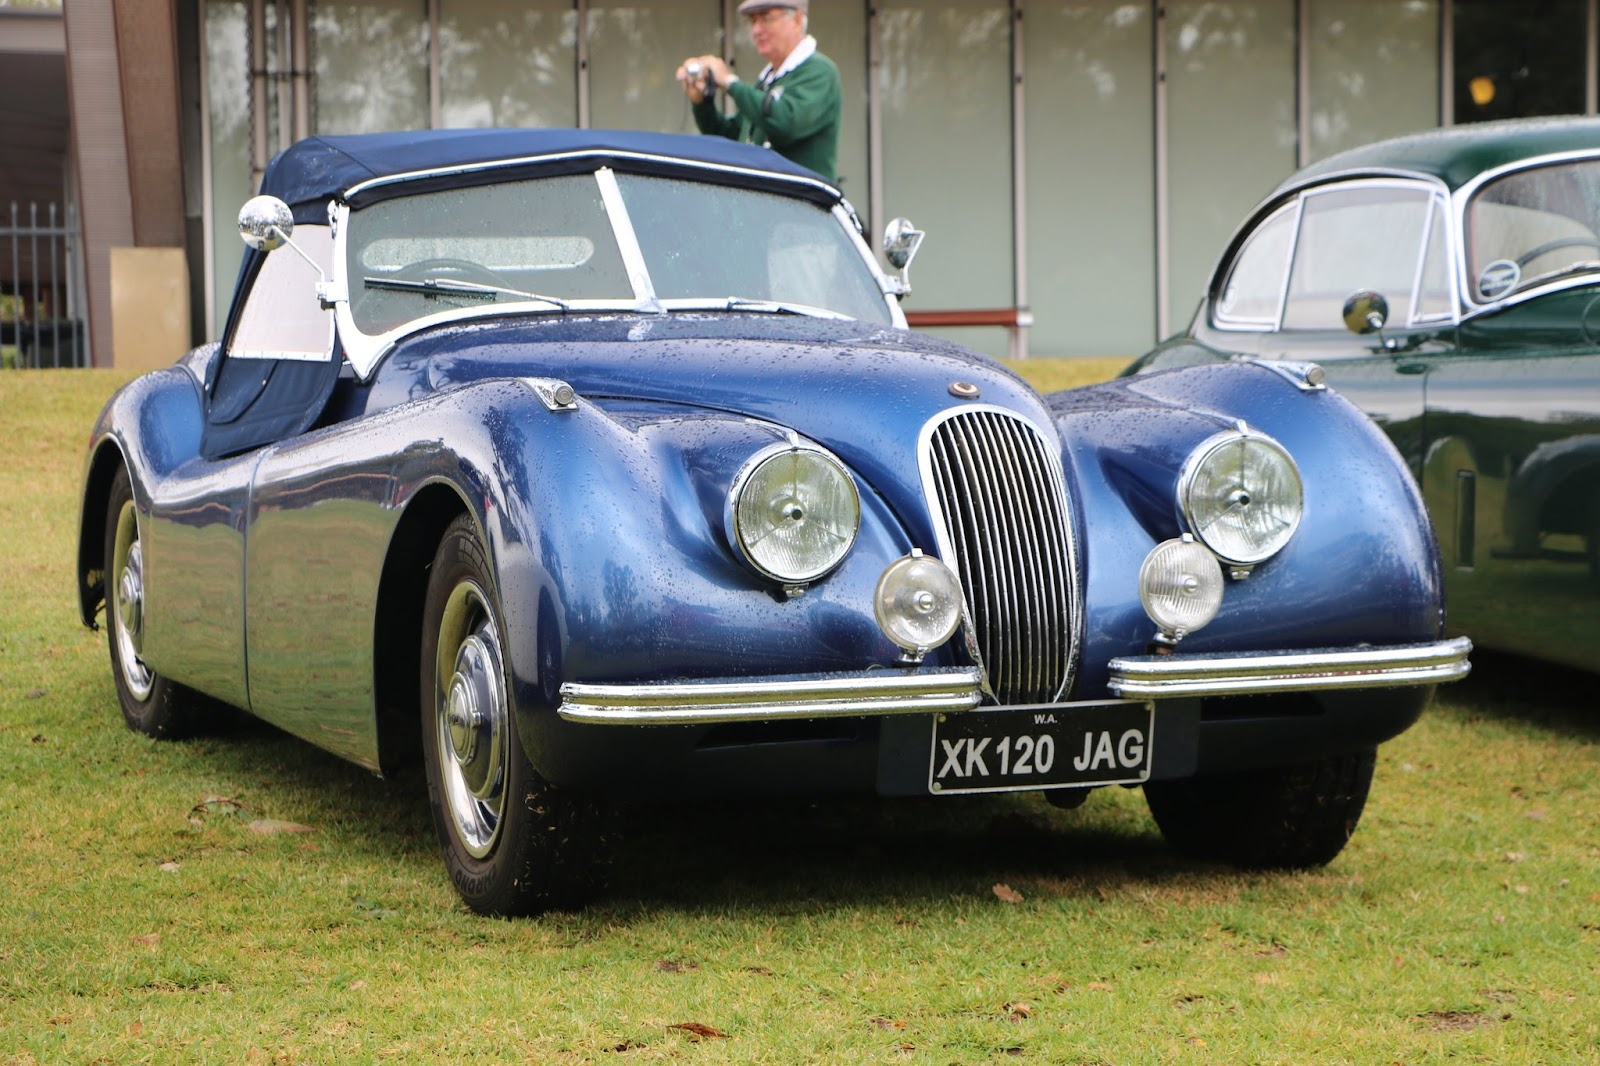 Jaguar_National_Rally_2018-04-14_0096.JPG